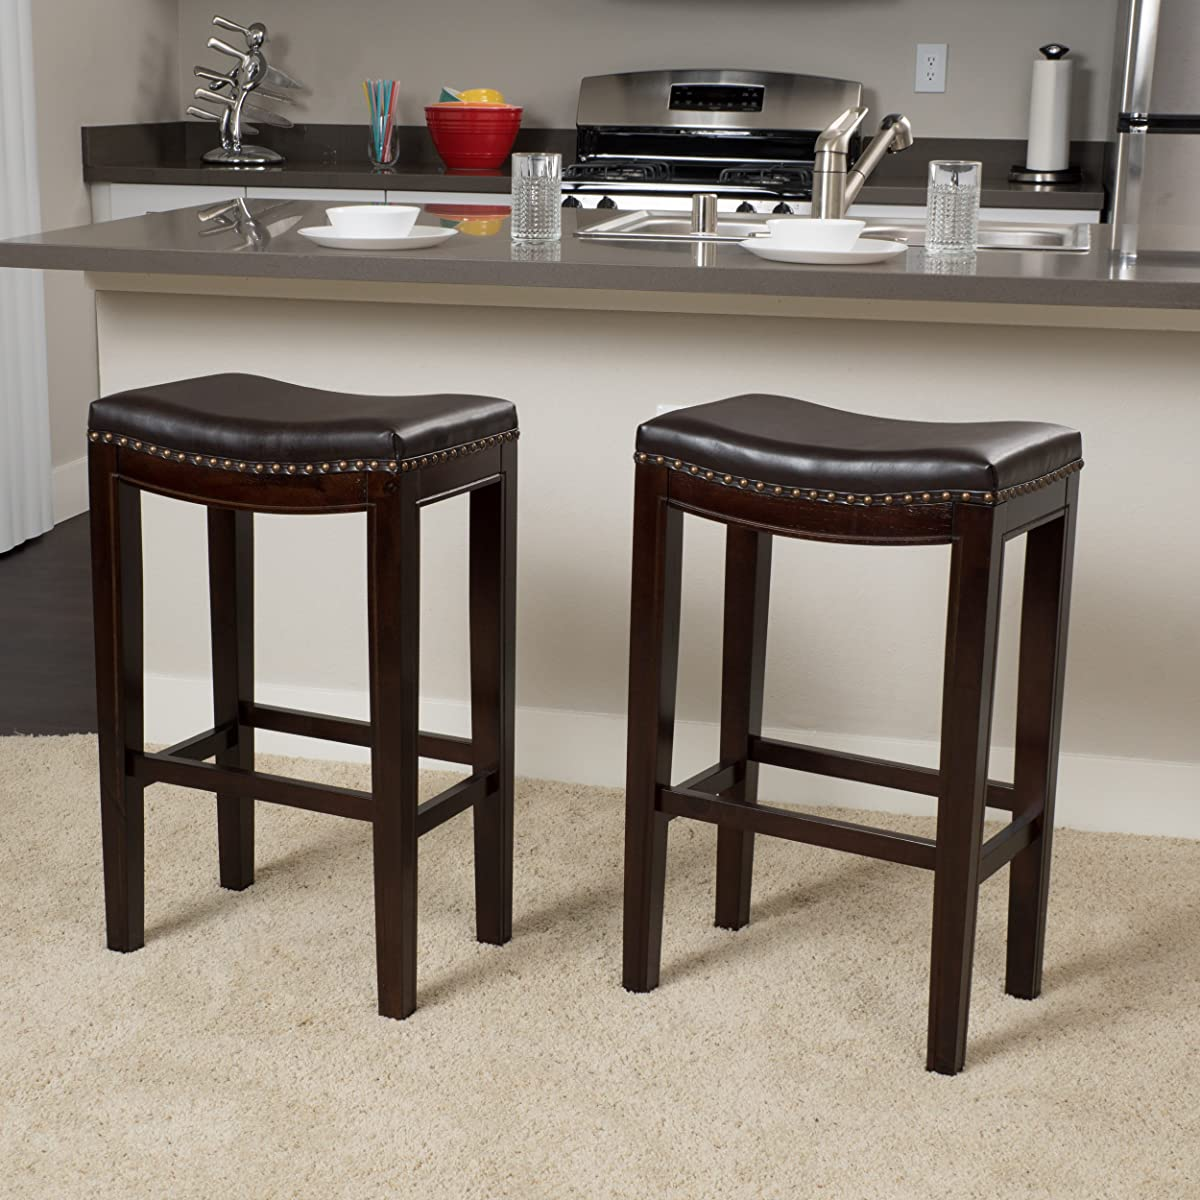 Jaeden Backless Brown Leather 30 high Bar Stools (Set of 2)